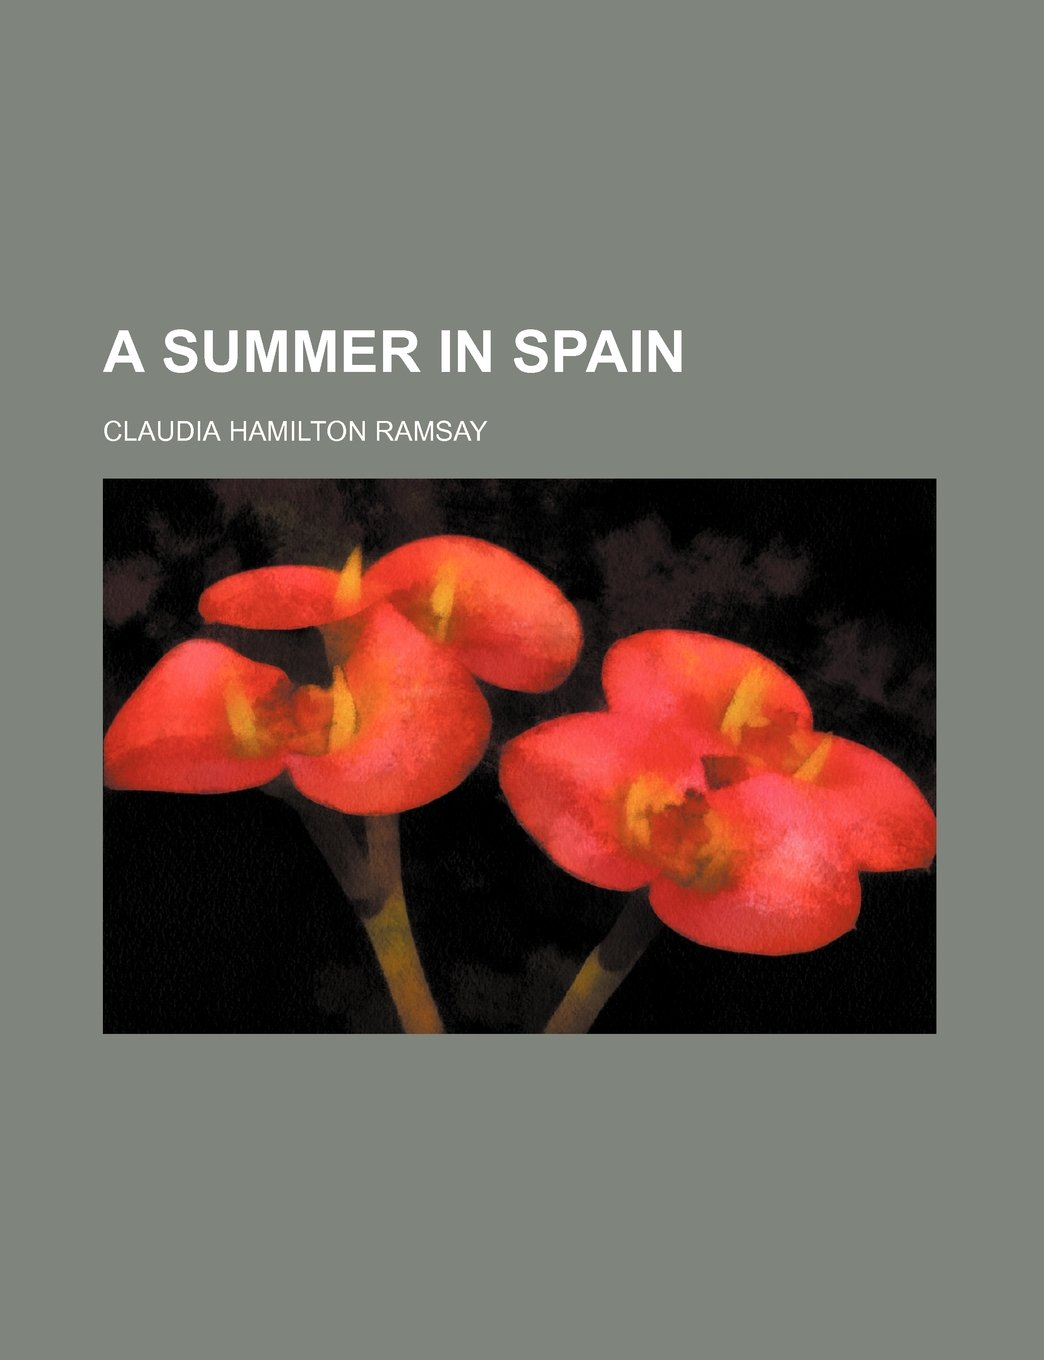 A summer in Spain: Amazon.es: Claudia Hamilton Ramsay: Libros en idiomas extranjeros